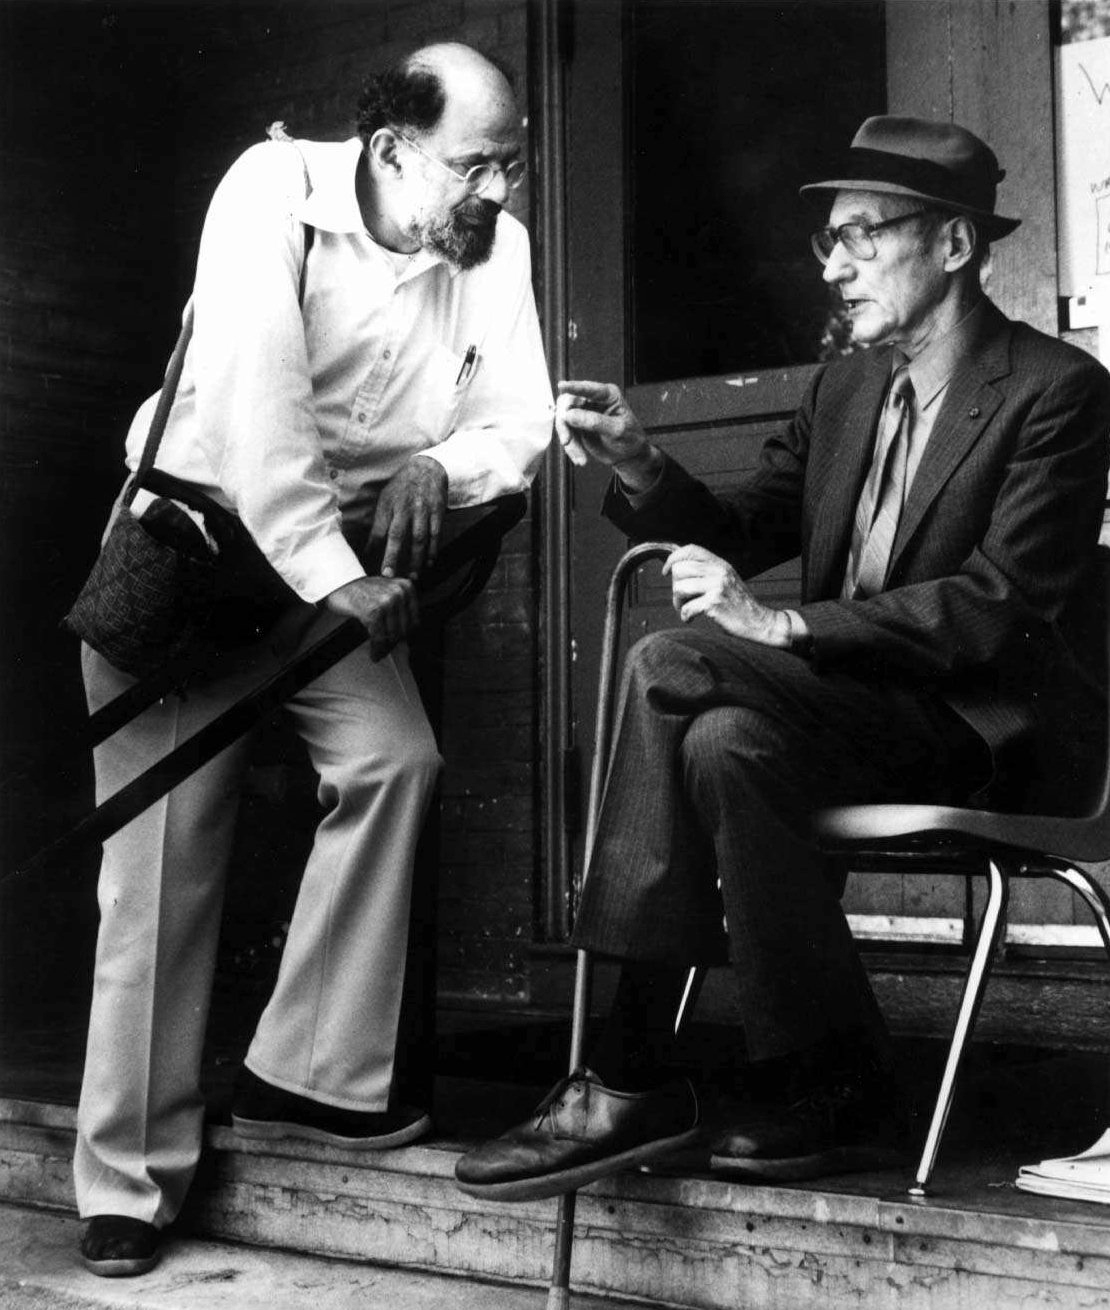 Allen Ginsberg with William S. Burroughs. AP Photo